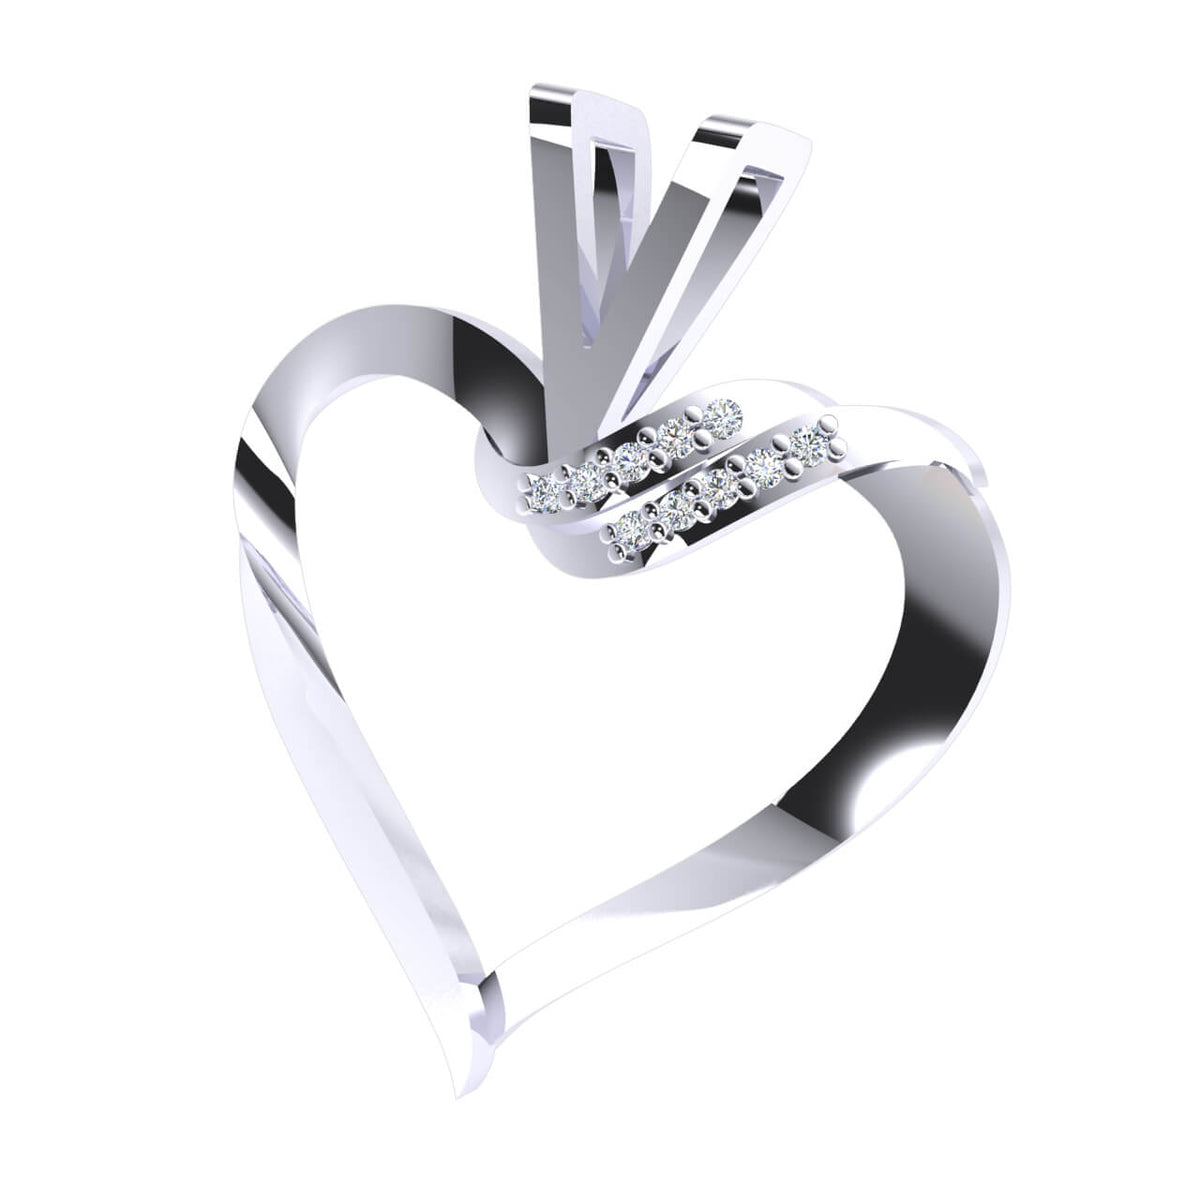 0.05 Ct Round G SI1 Diamond Heart Pendant For Women 18k Gold